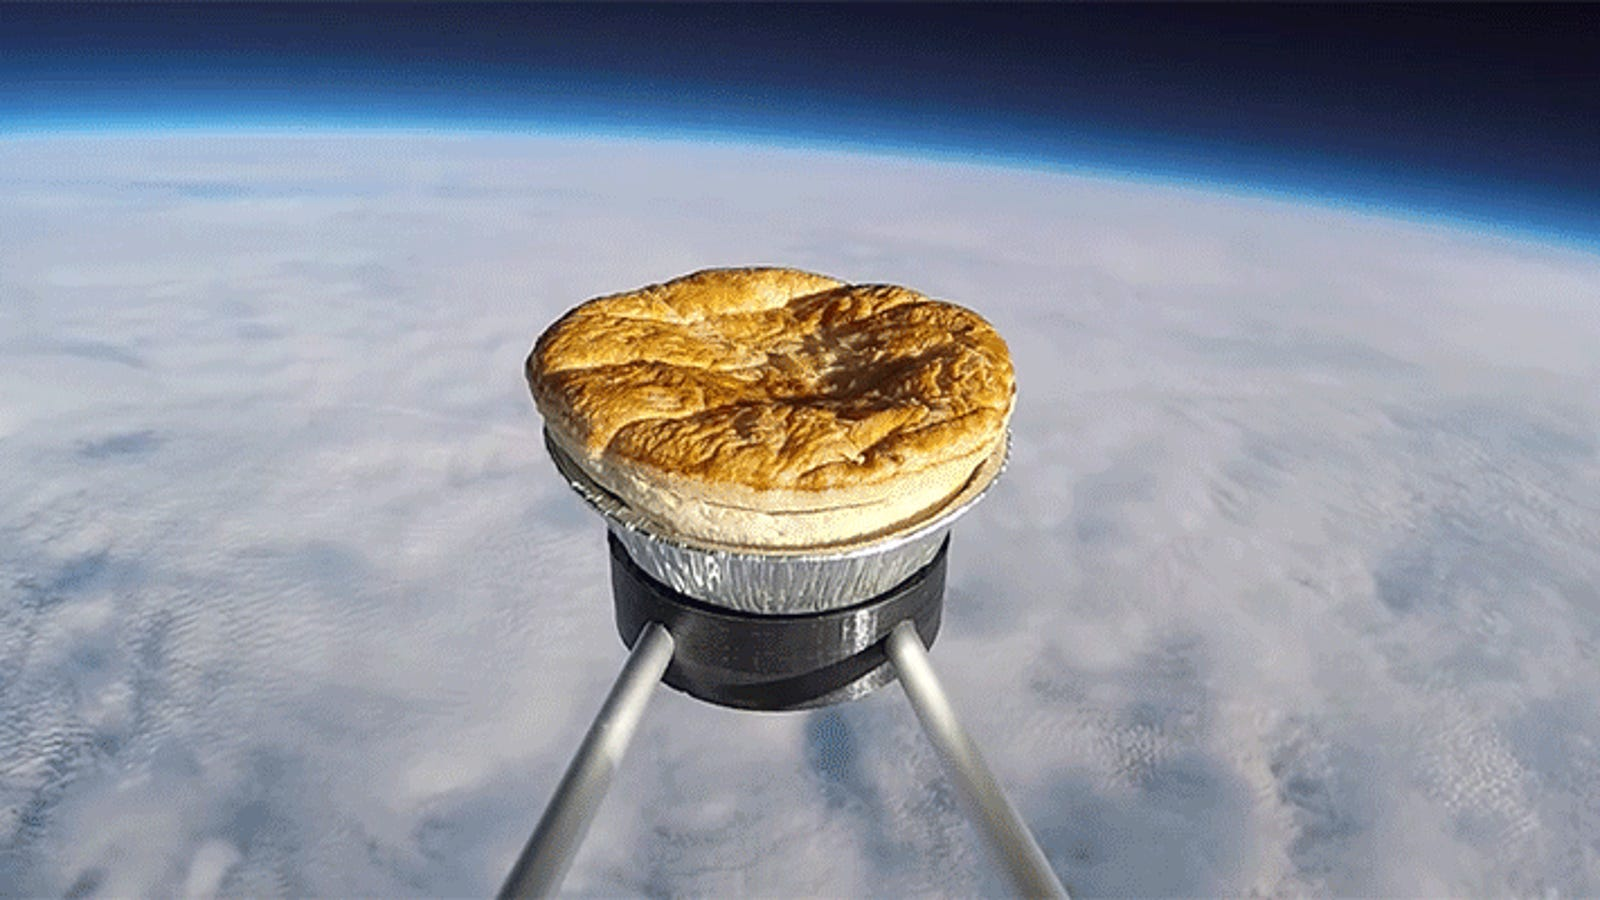 Brits Attempt to Send Meat Pie to Space Because Who on Earth Wants to Eat Meat Pie